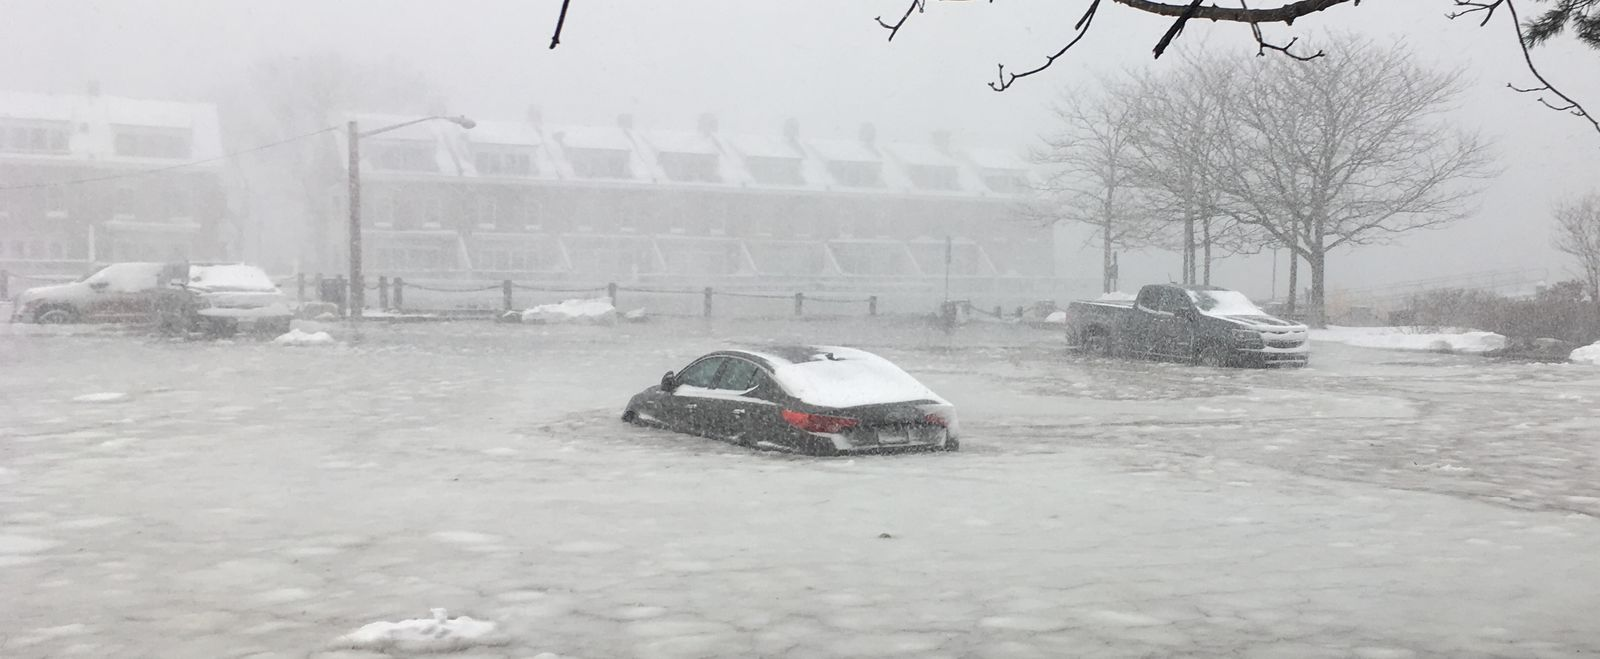 Cars parked by Boston's waterfront and flooded by snow and water.